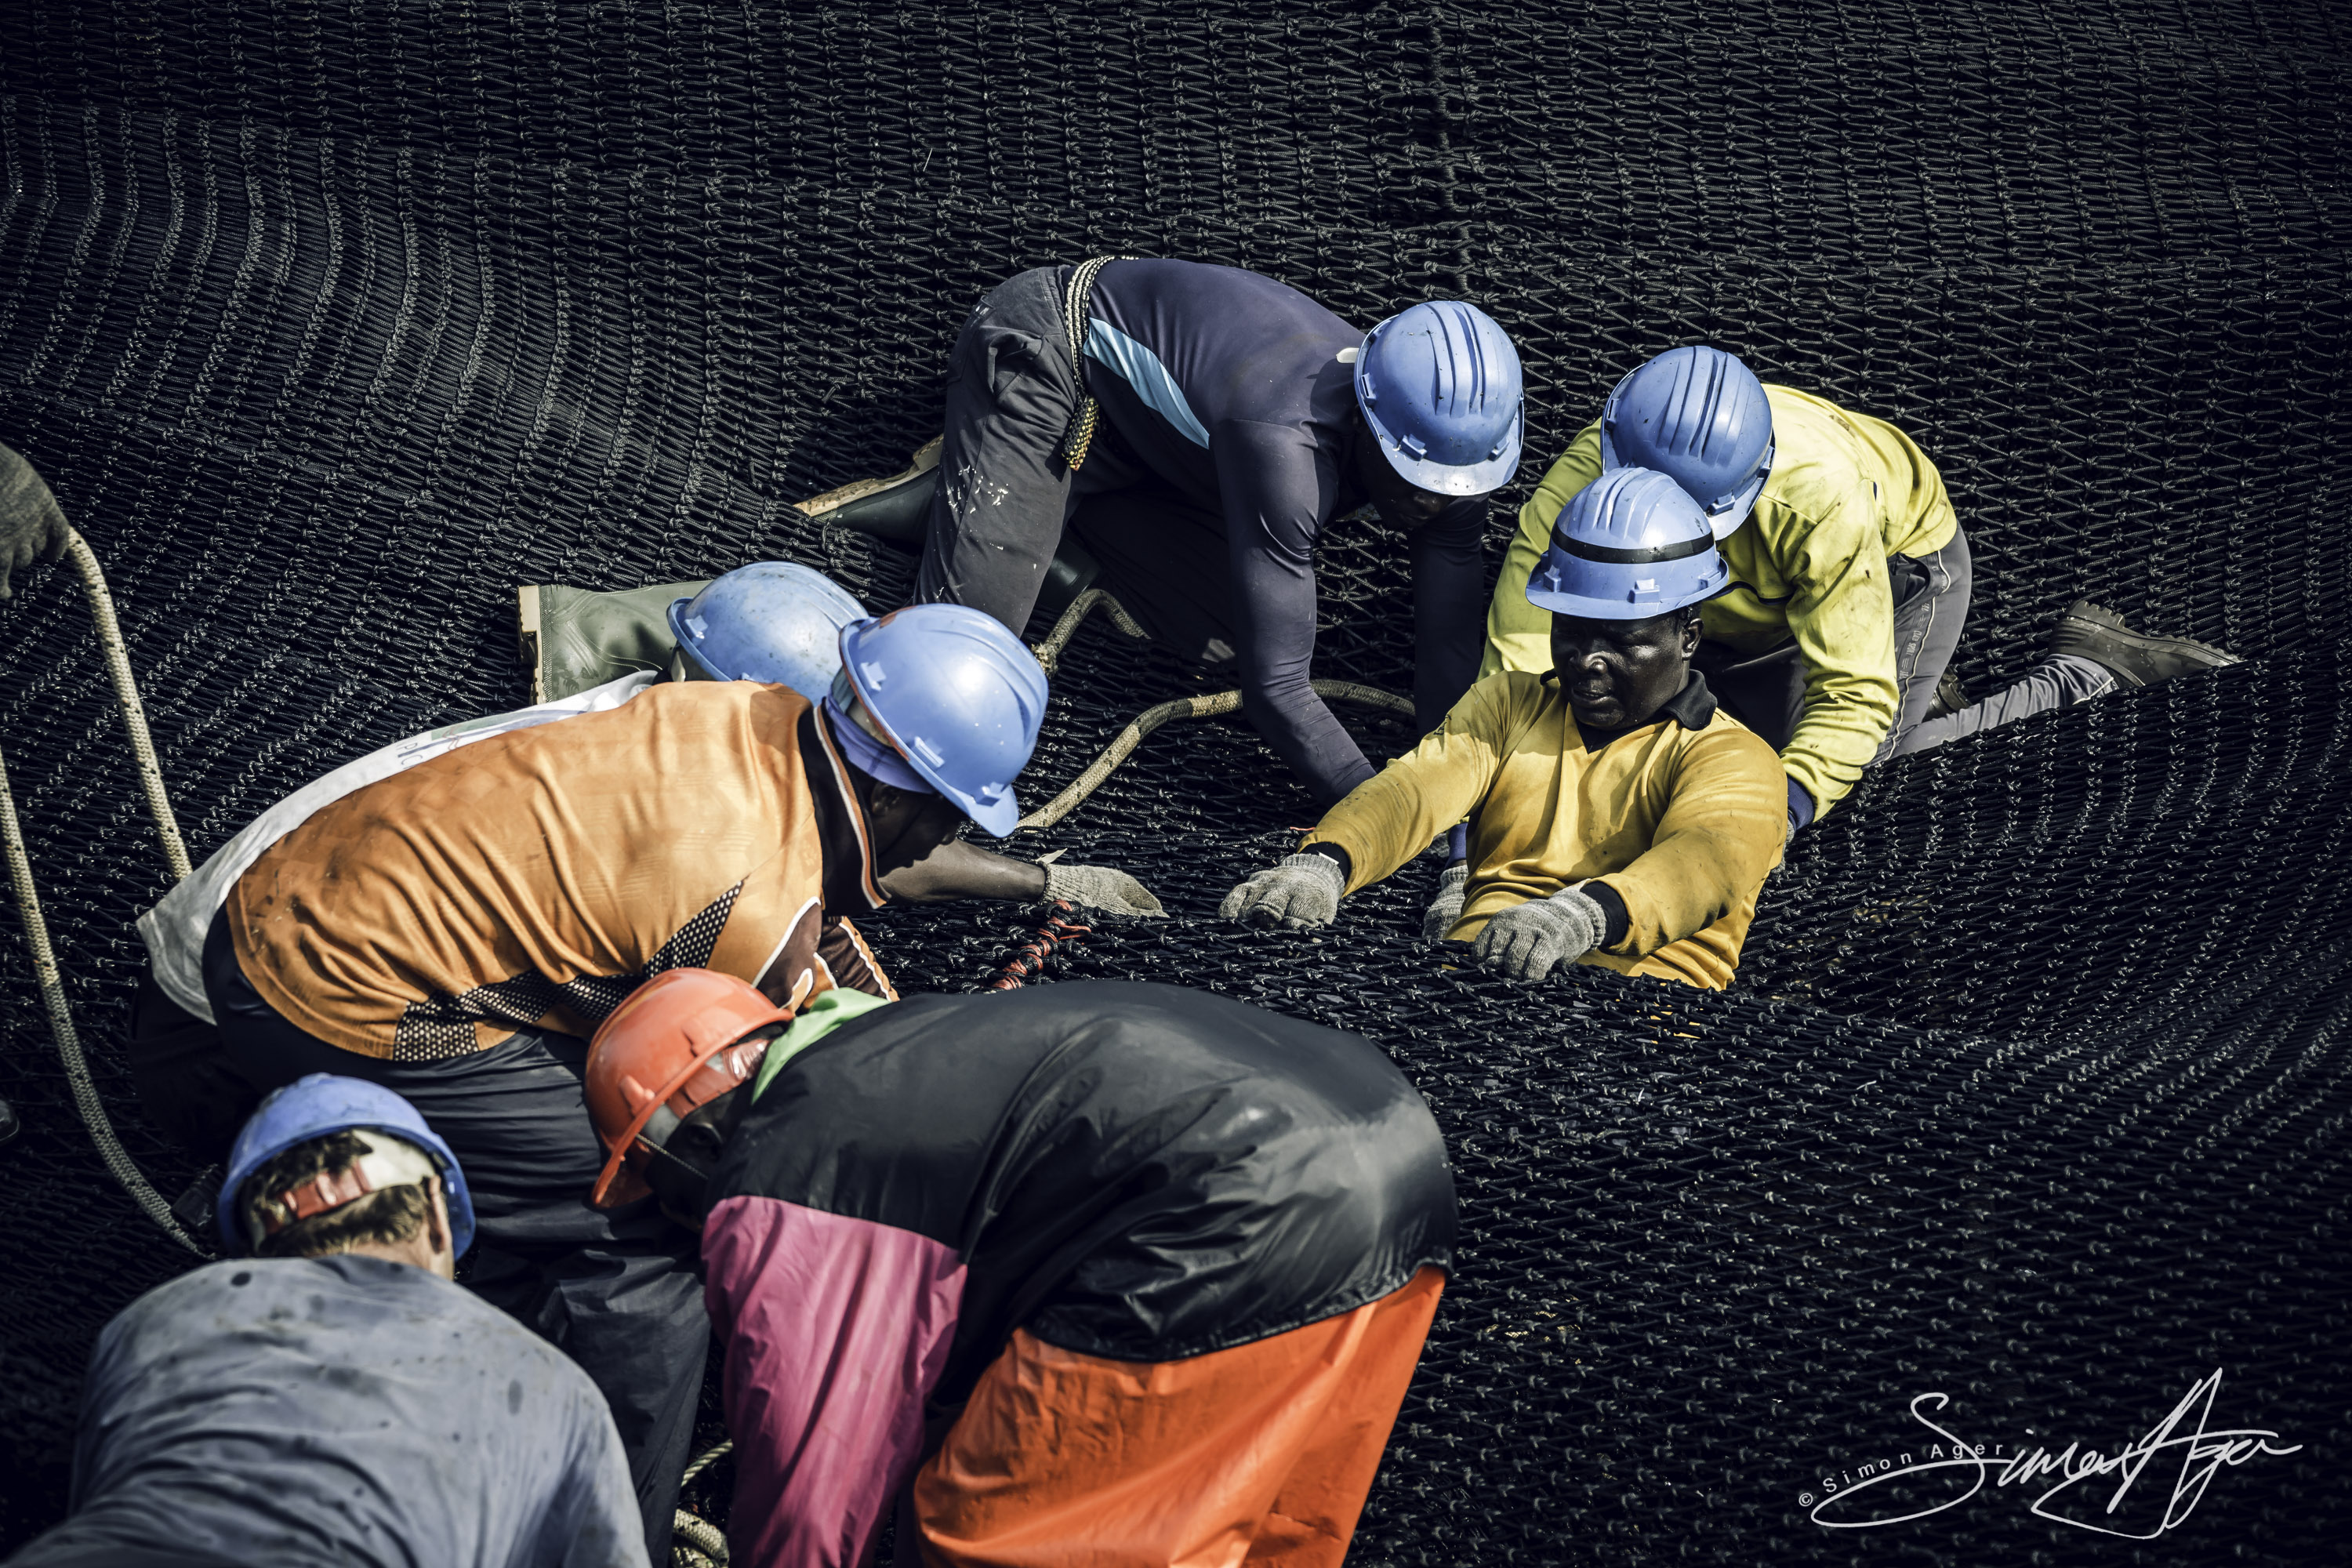 160602-SA-Zuberoa-deckhands-work-to-secure-nets-as-they-are-hauled-in--3